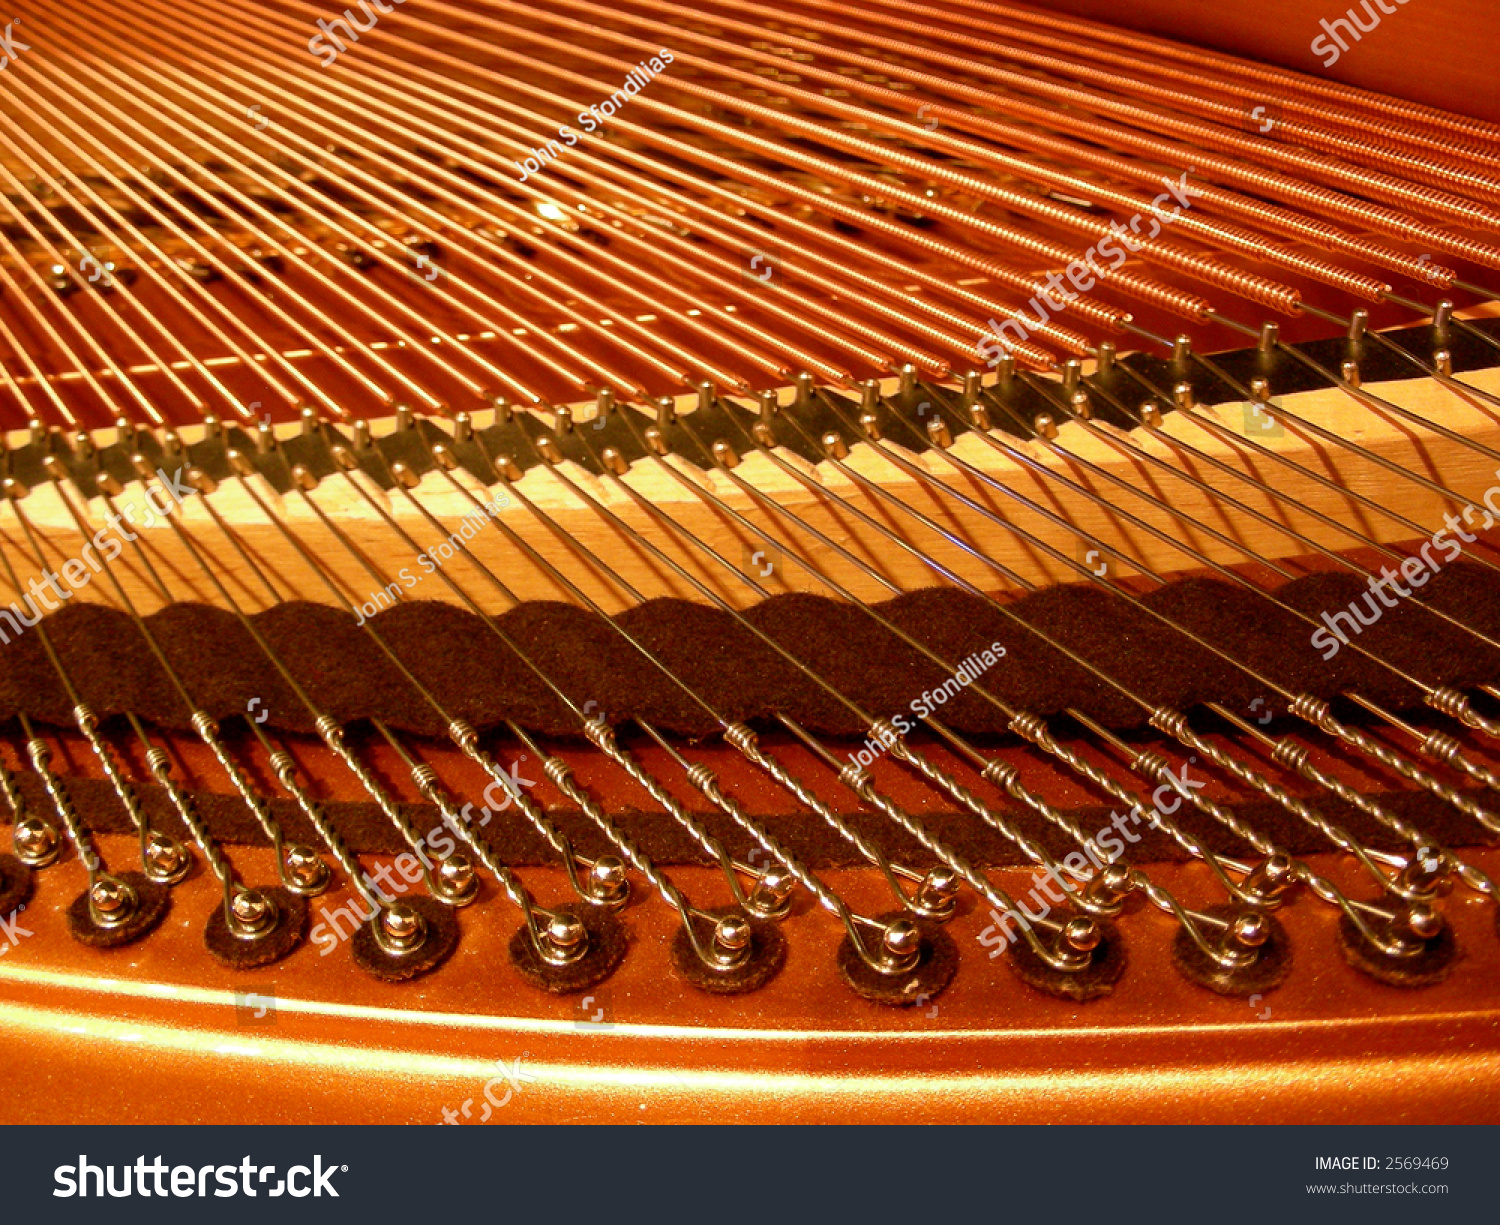 Strings And Inner Workings Of A Baby Grand Piano Stock